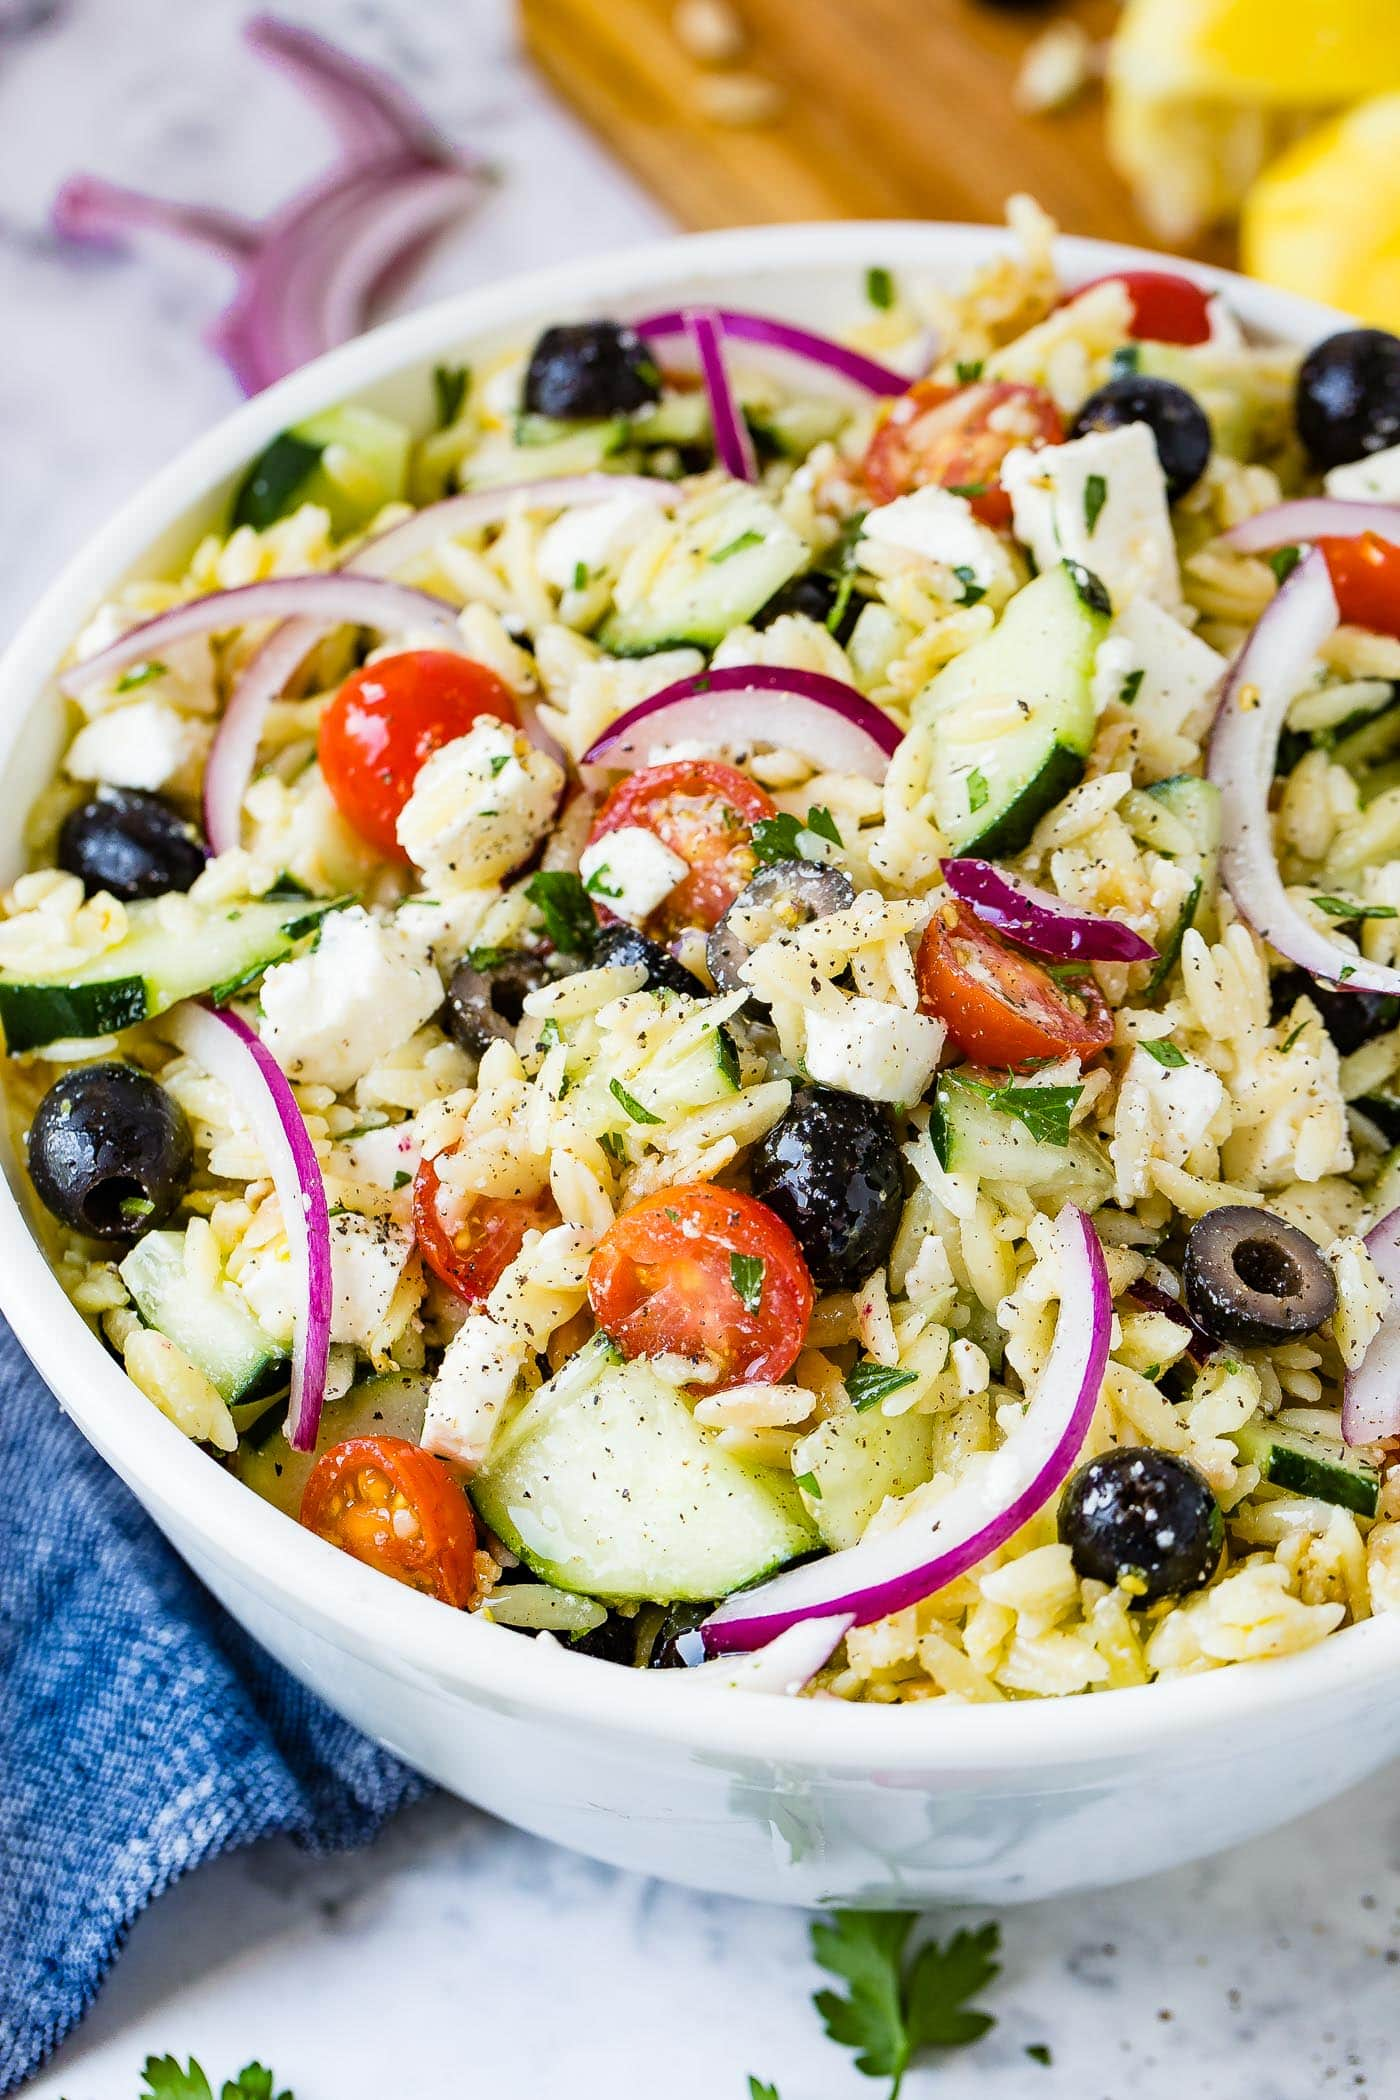 A white bowl of Greek orzo pasta salad with halved cherry tomatoes, slices of red onion, cucumber, black olives and feta cheese.